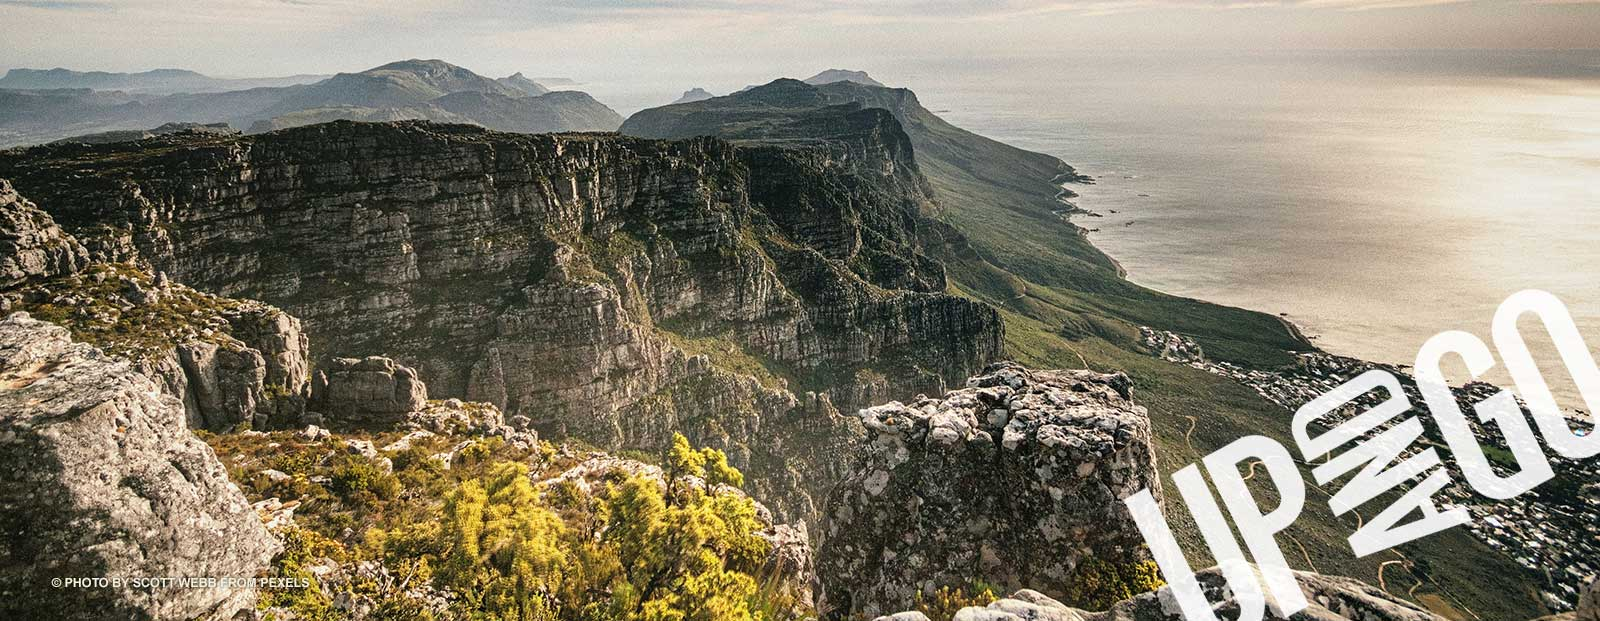 Upandgo Accommodation South Africa Cape Town Table Mountain